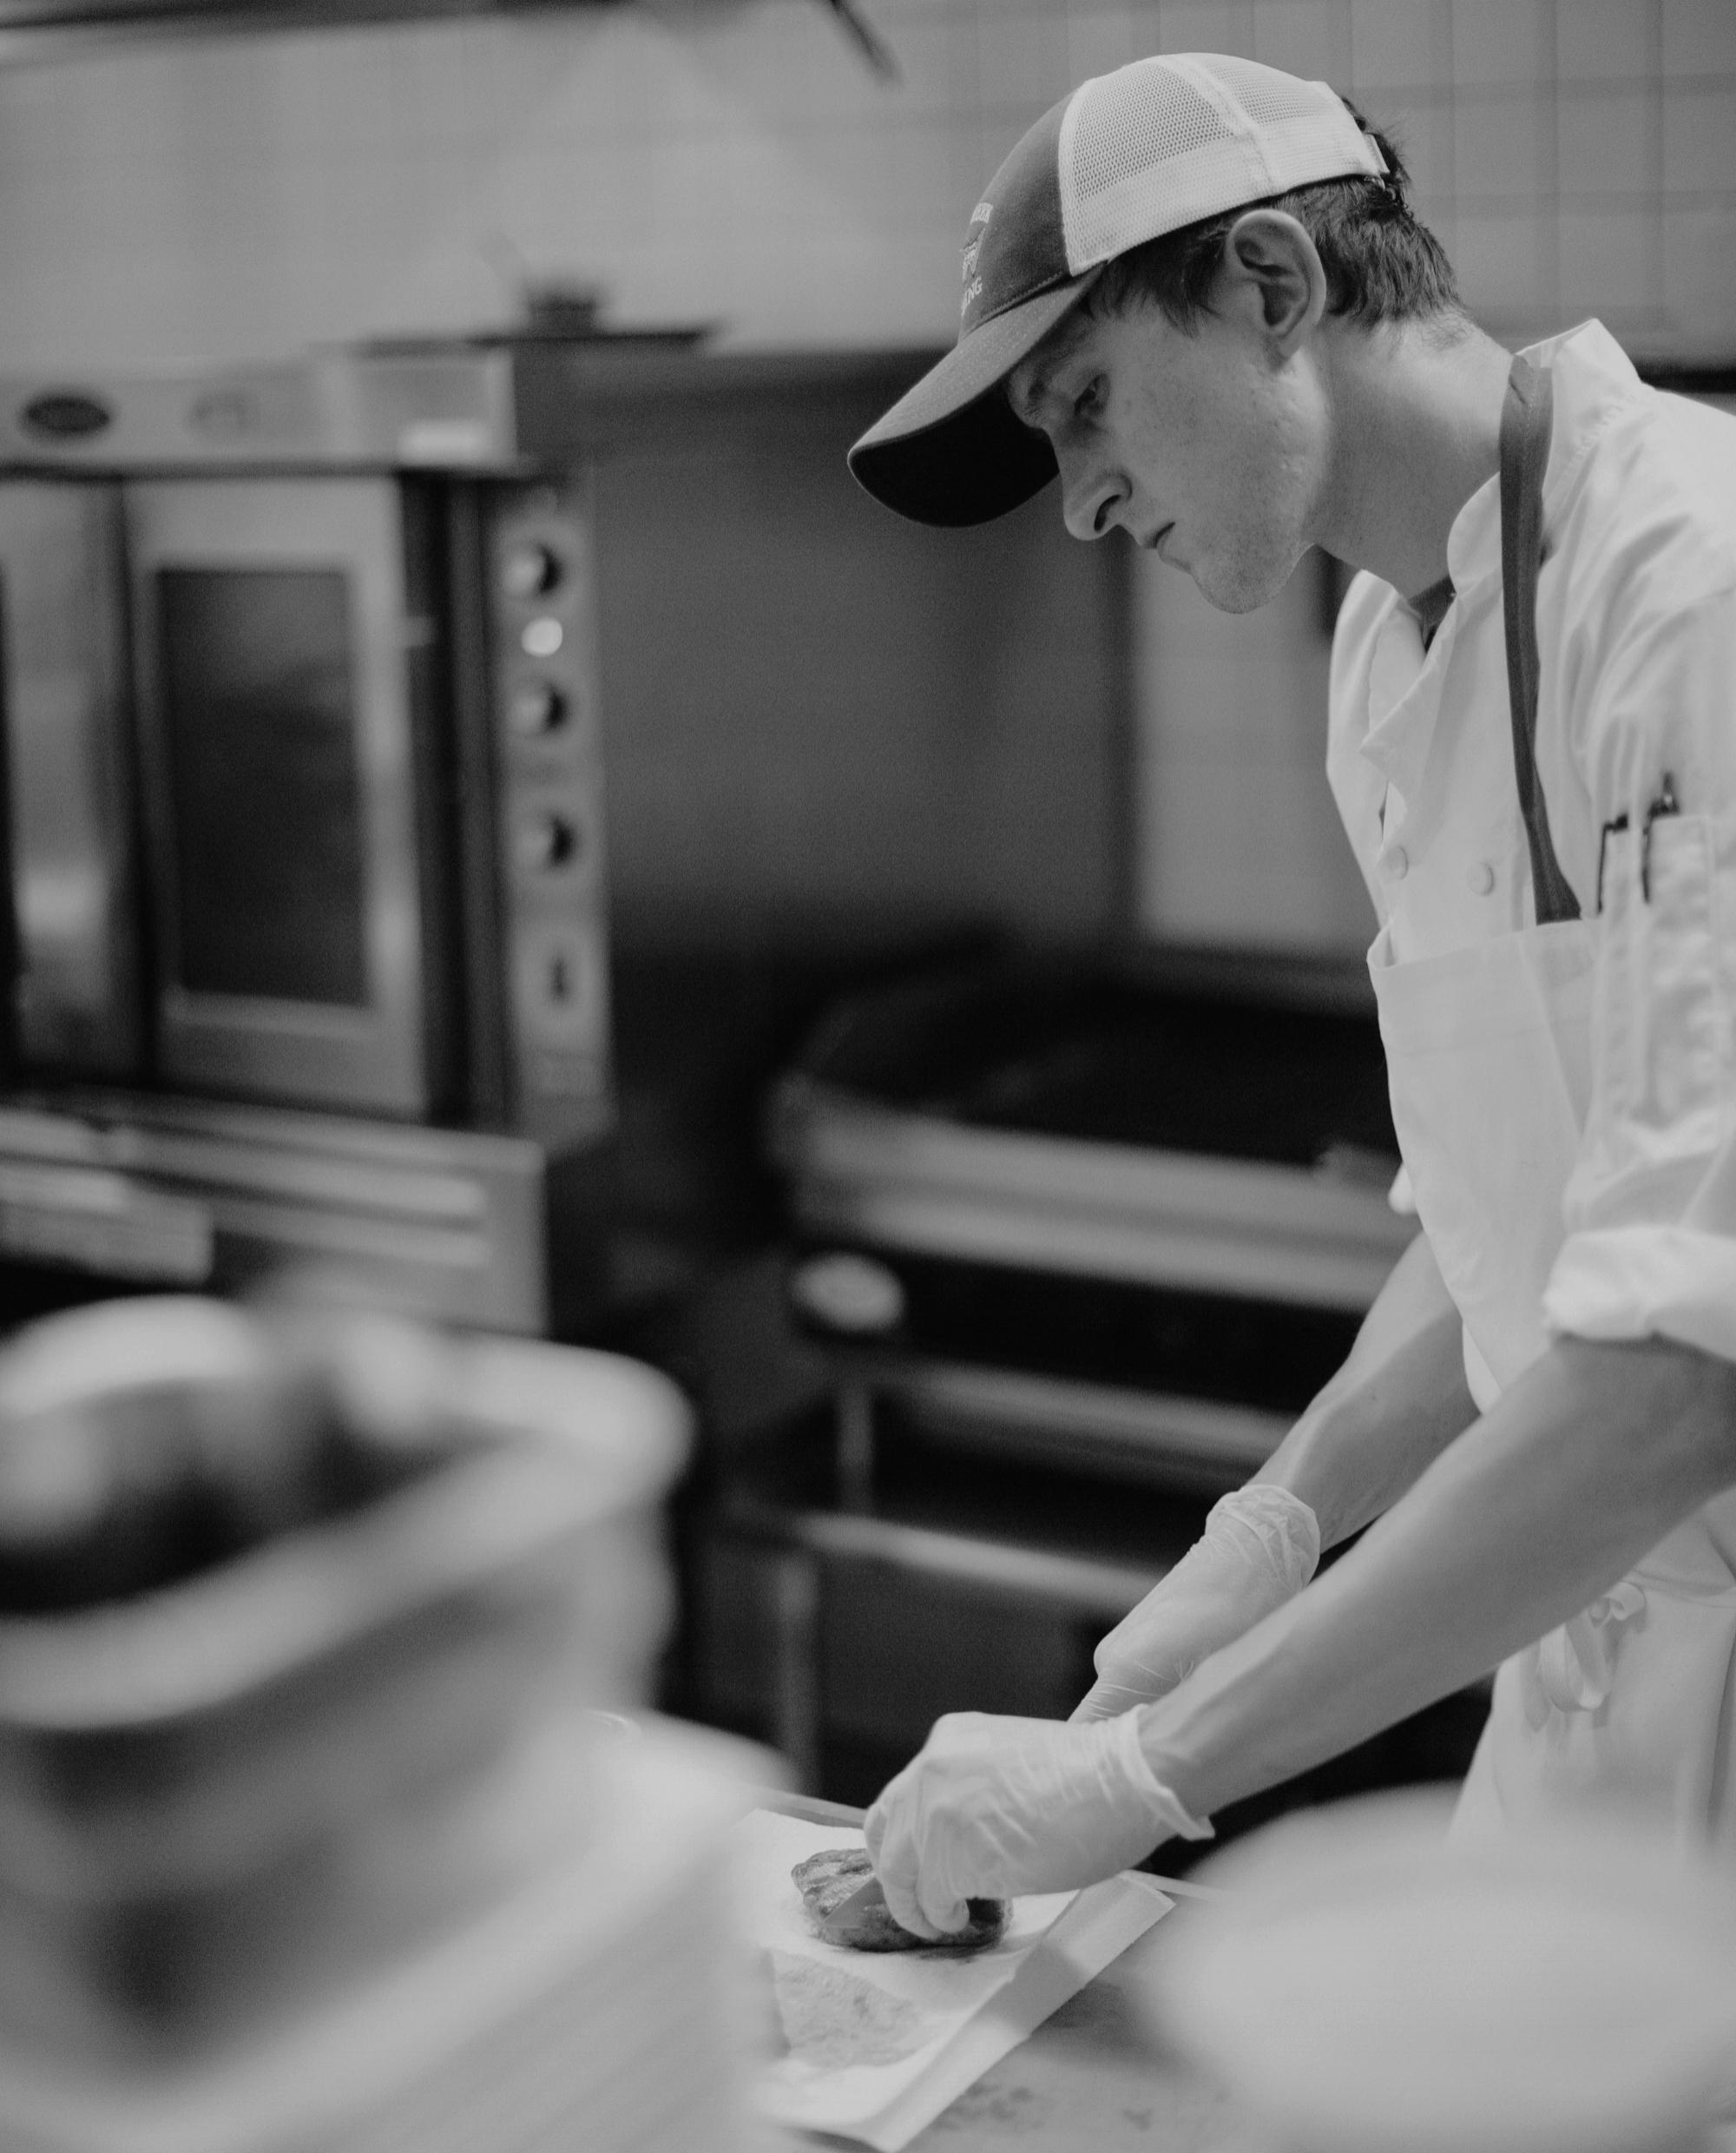 """Nick Boucher - Kitchen Manager & Sous ChefNick Boucher is a local gentleman with a long working history at the Joshua Wilton House. Beginning in 2012 as a dishwasher, Nick saw it as a """"foot in the door"""" for the culinary field. Steadily, Nick has trained with fantastic chefs and found his own voice & style in the kitchen. From intimate gatherings, to large weddings, Nick has maintained a steady hand and a good laugh through it all. In the Fall of 2018, Nick was promoted to Kitchen Manager, and works alongside our Executive Chef to train staff, create fantastic dishes, and experiment with new techniques and products. With a passion for not only food, but the Wilton House itself, Nick has been an encouraging force as we continue to adapt and push ourselves further. We're happy he has continued his growth with us."""